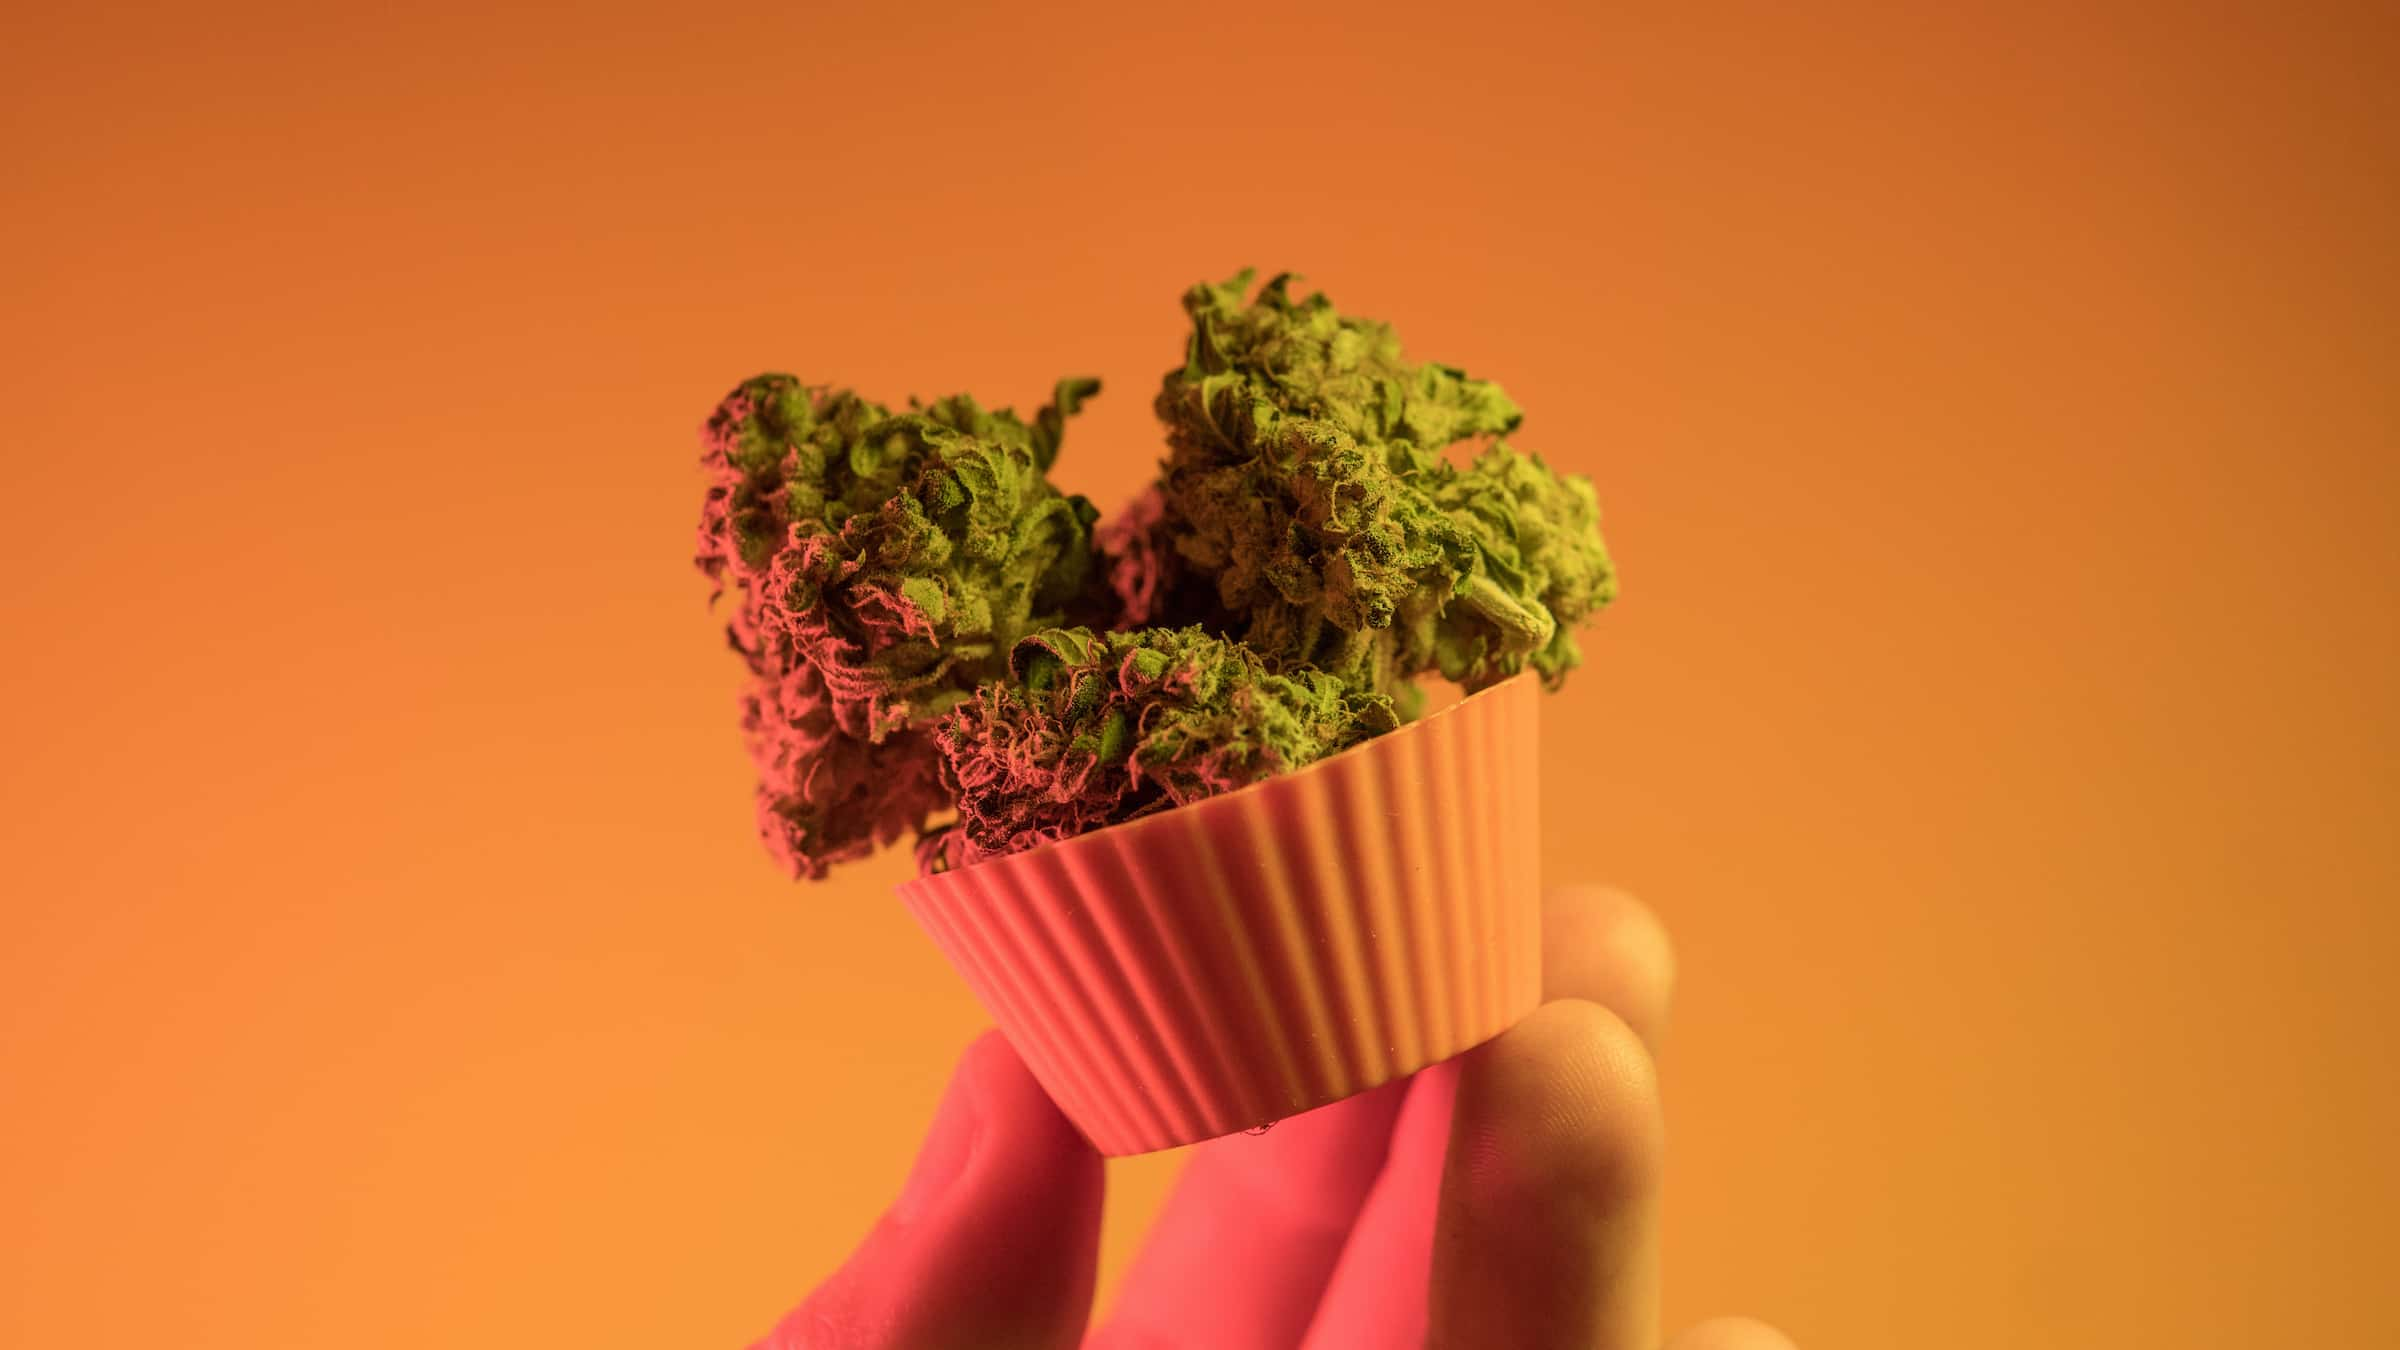 Cannabis edible being help by a hand with an orange background.